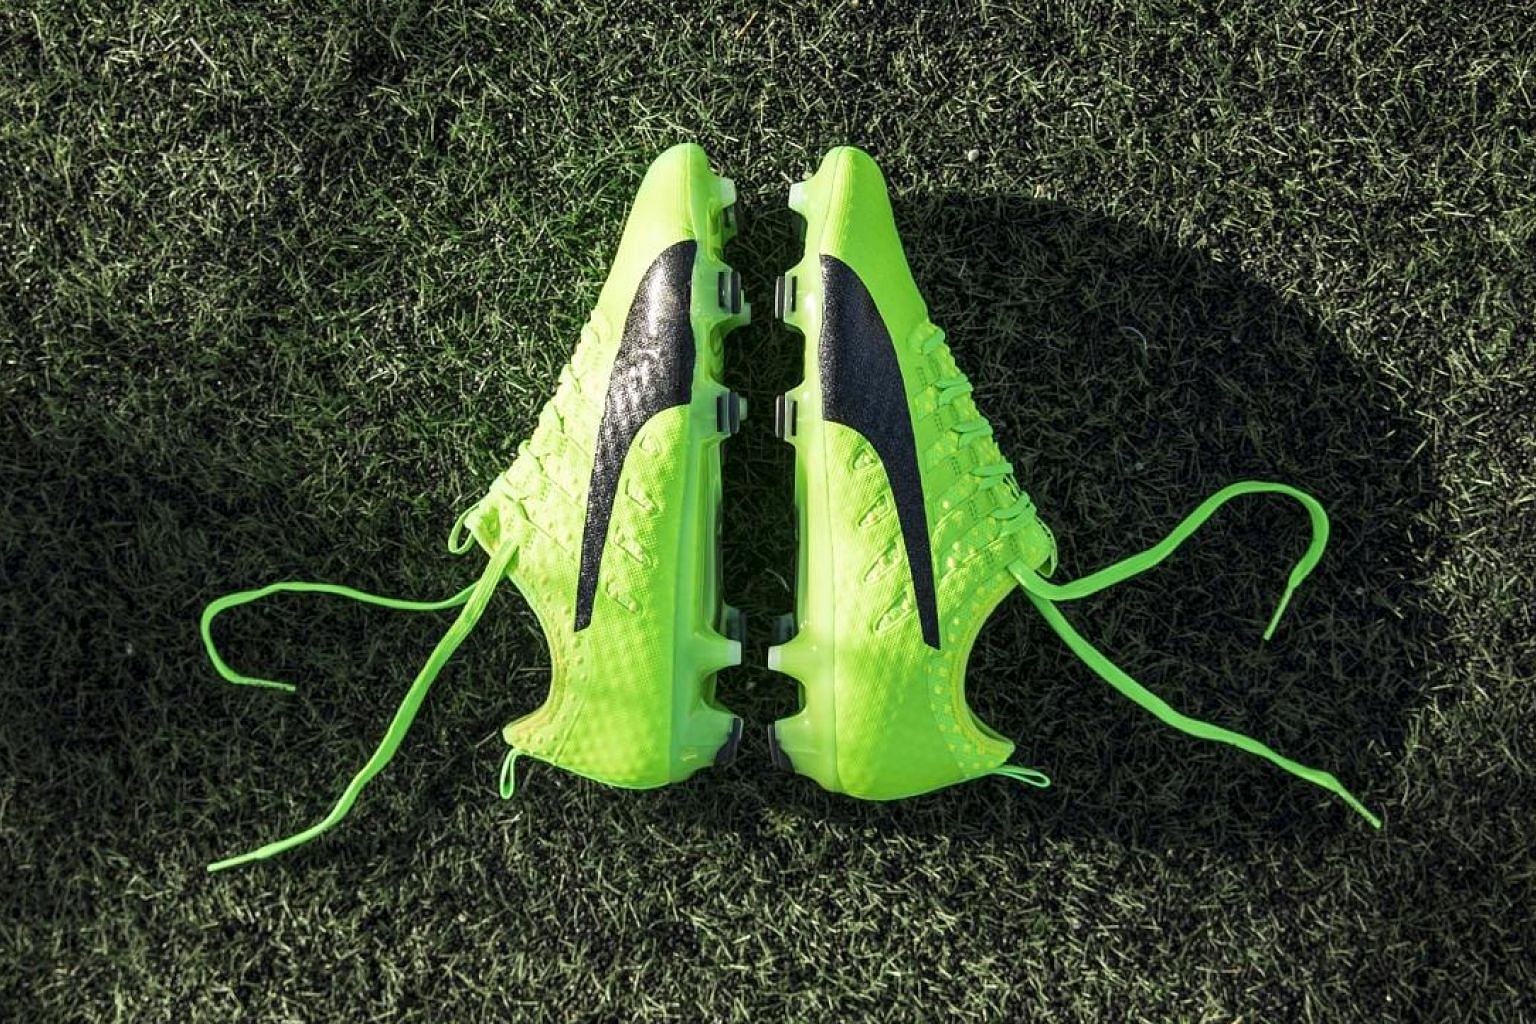 The Vigor 1 is the first in Puma's evoPower family to feature a stretchable Spandex sock construction for an ultra-comfortable slip-on boot with barefoot feeling.